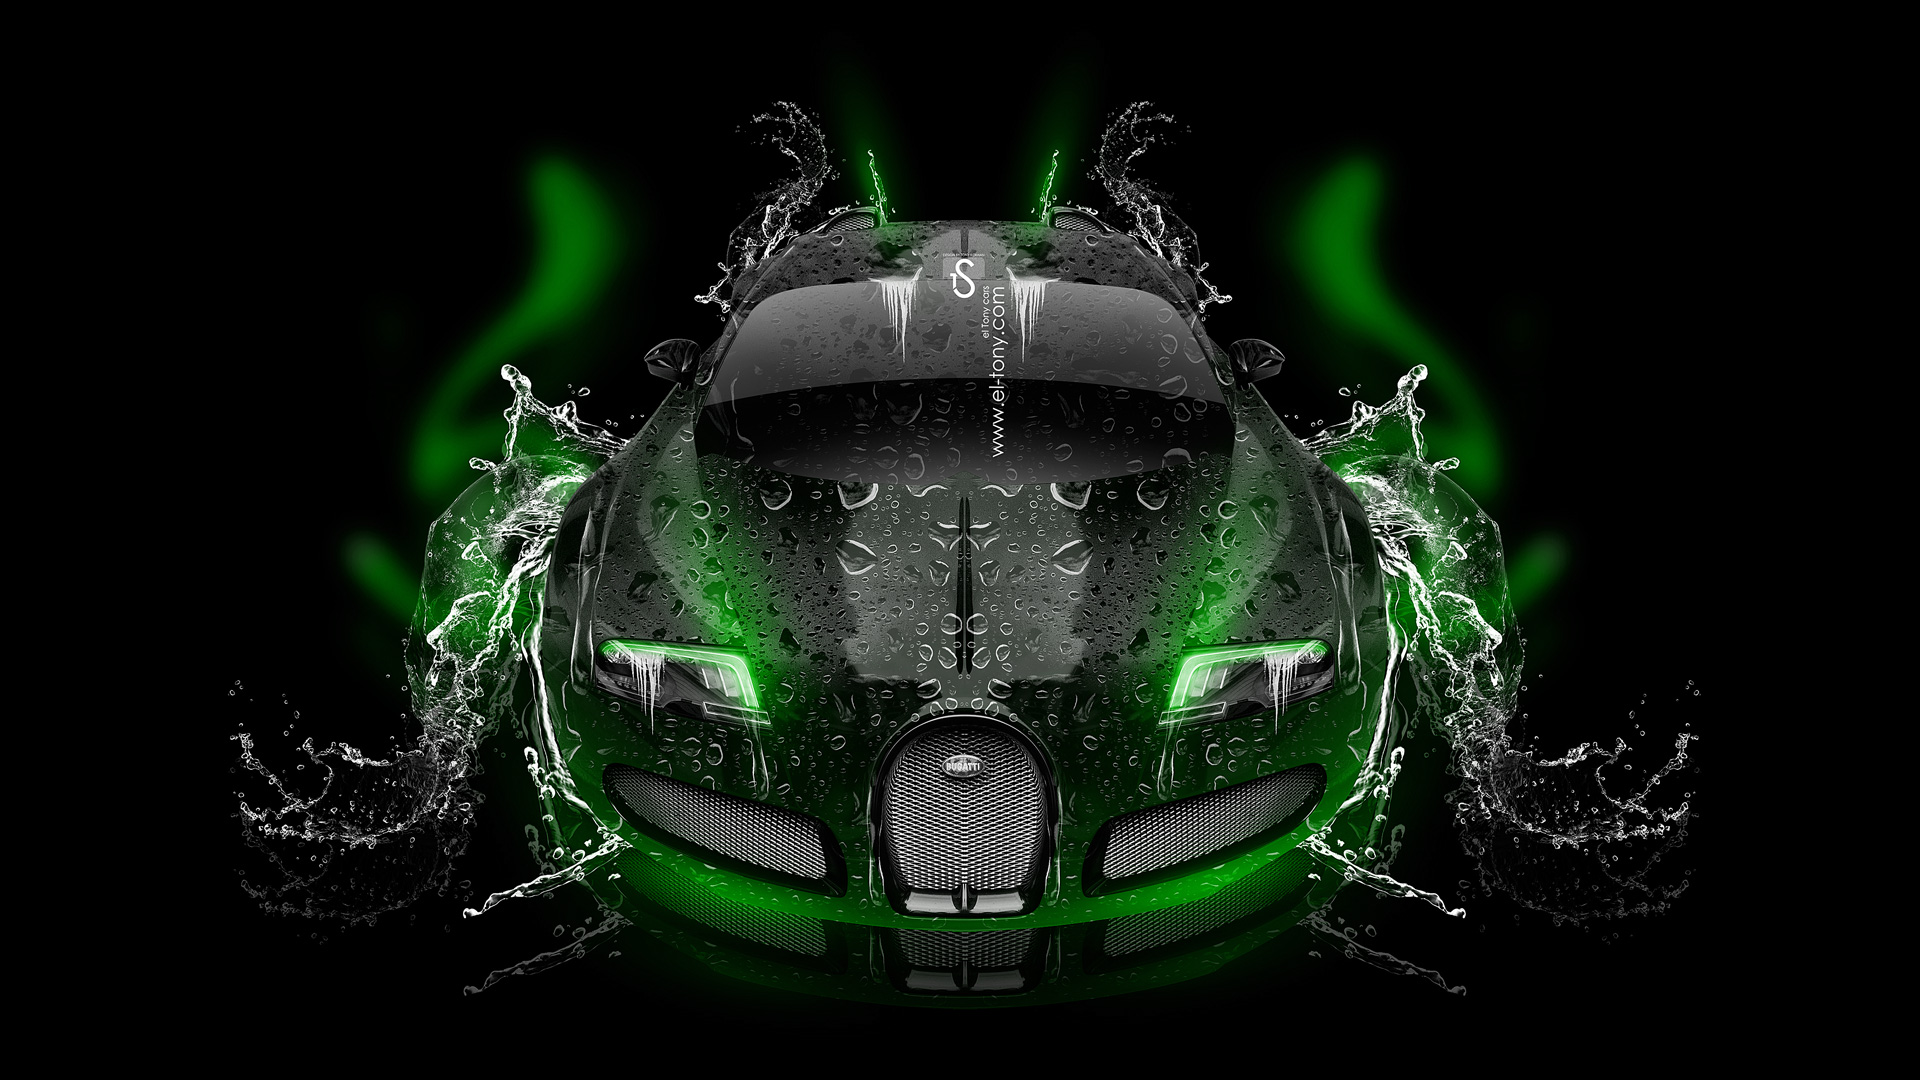 ... Bugatti Veyron Up Water Car 2014 Green Neon  ...